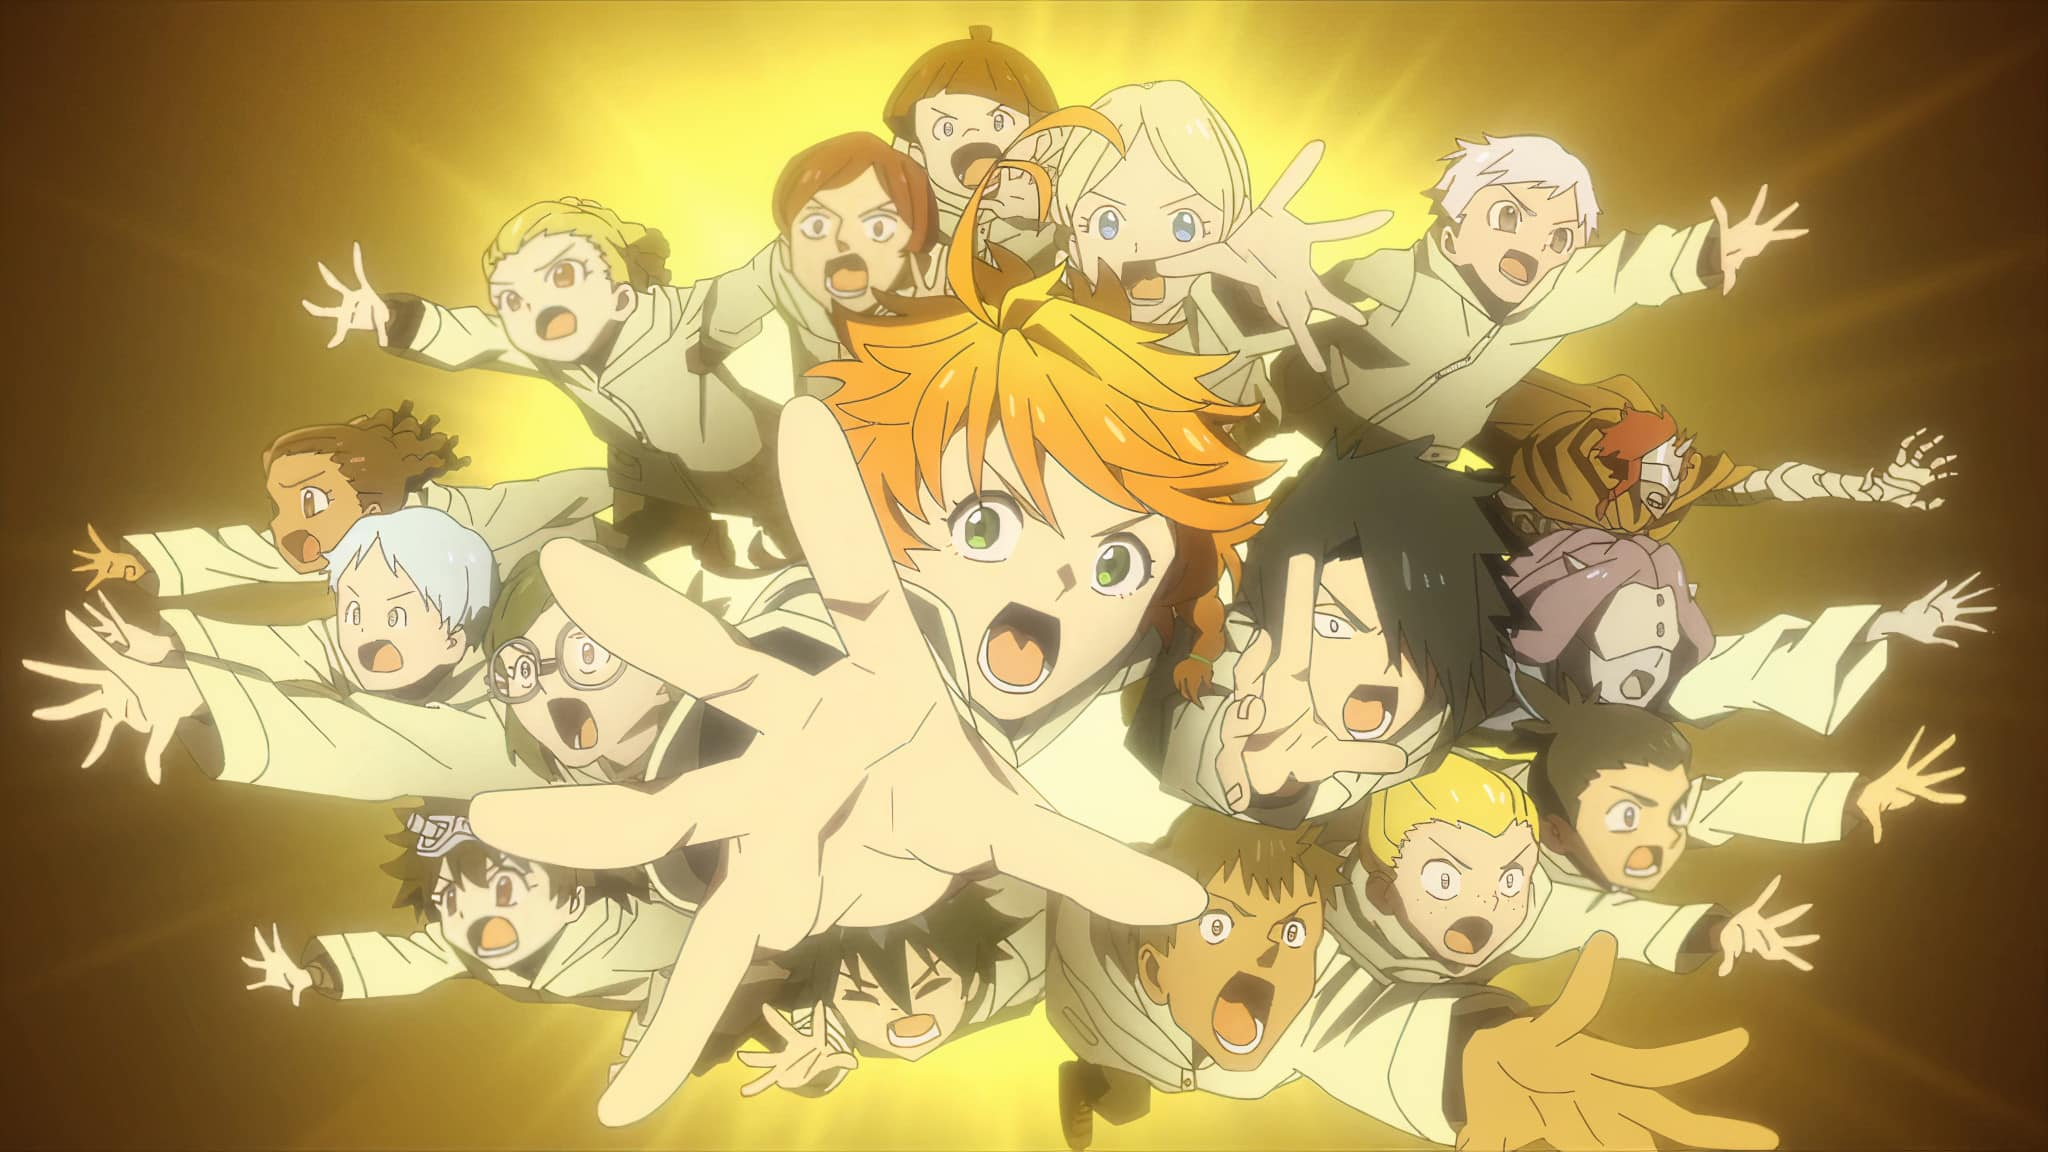 Annonce de The Promised Neverland Saison 2 en opening